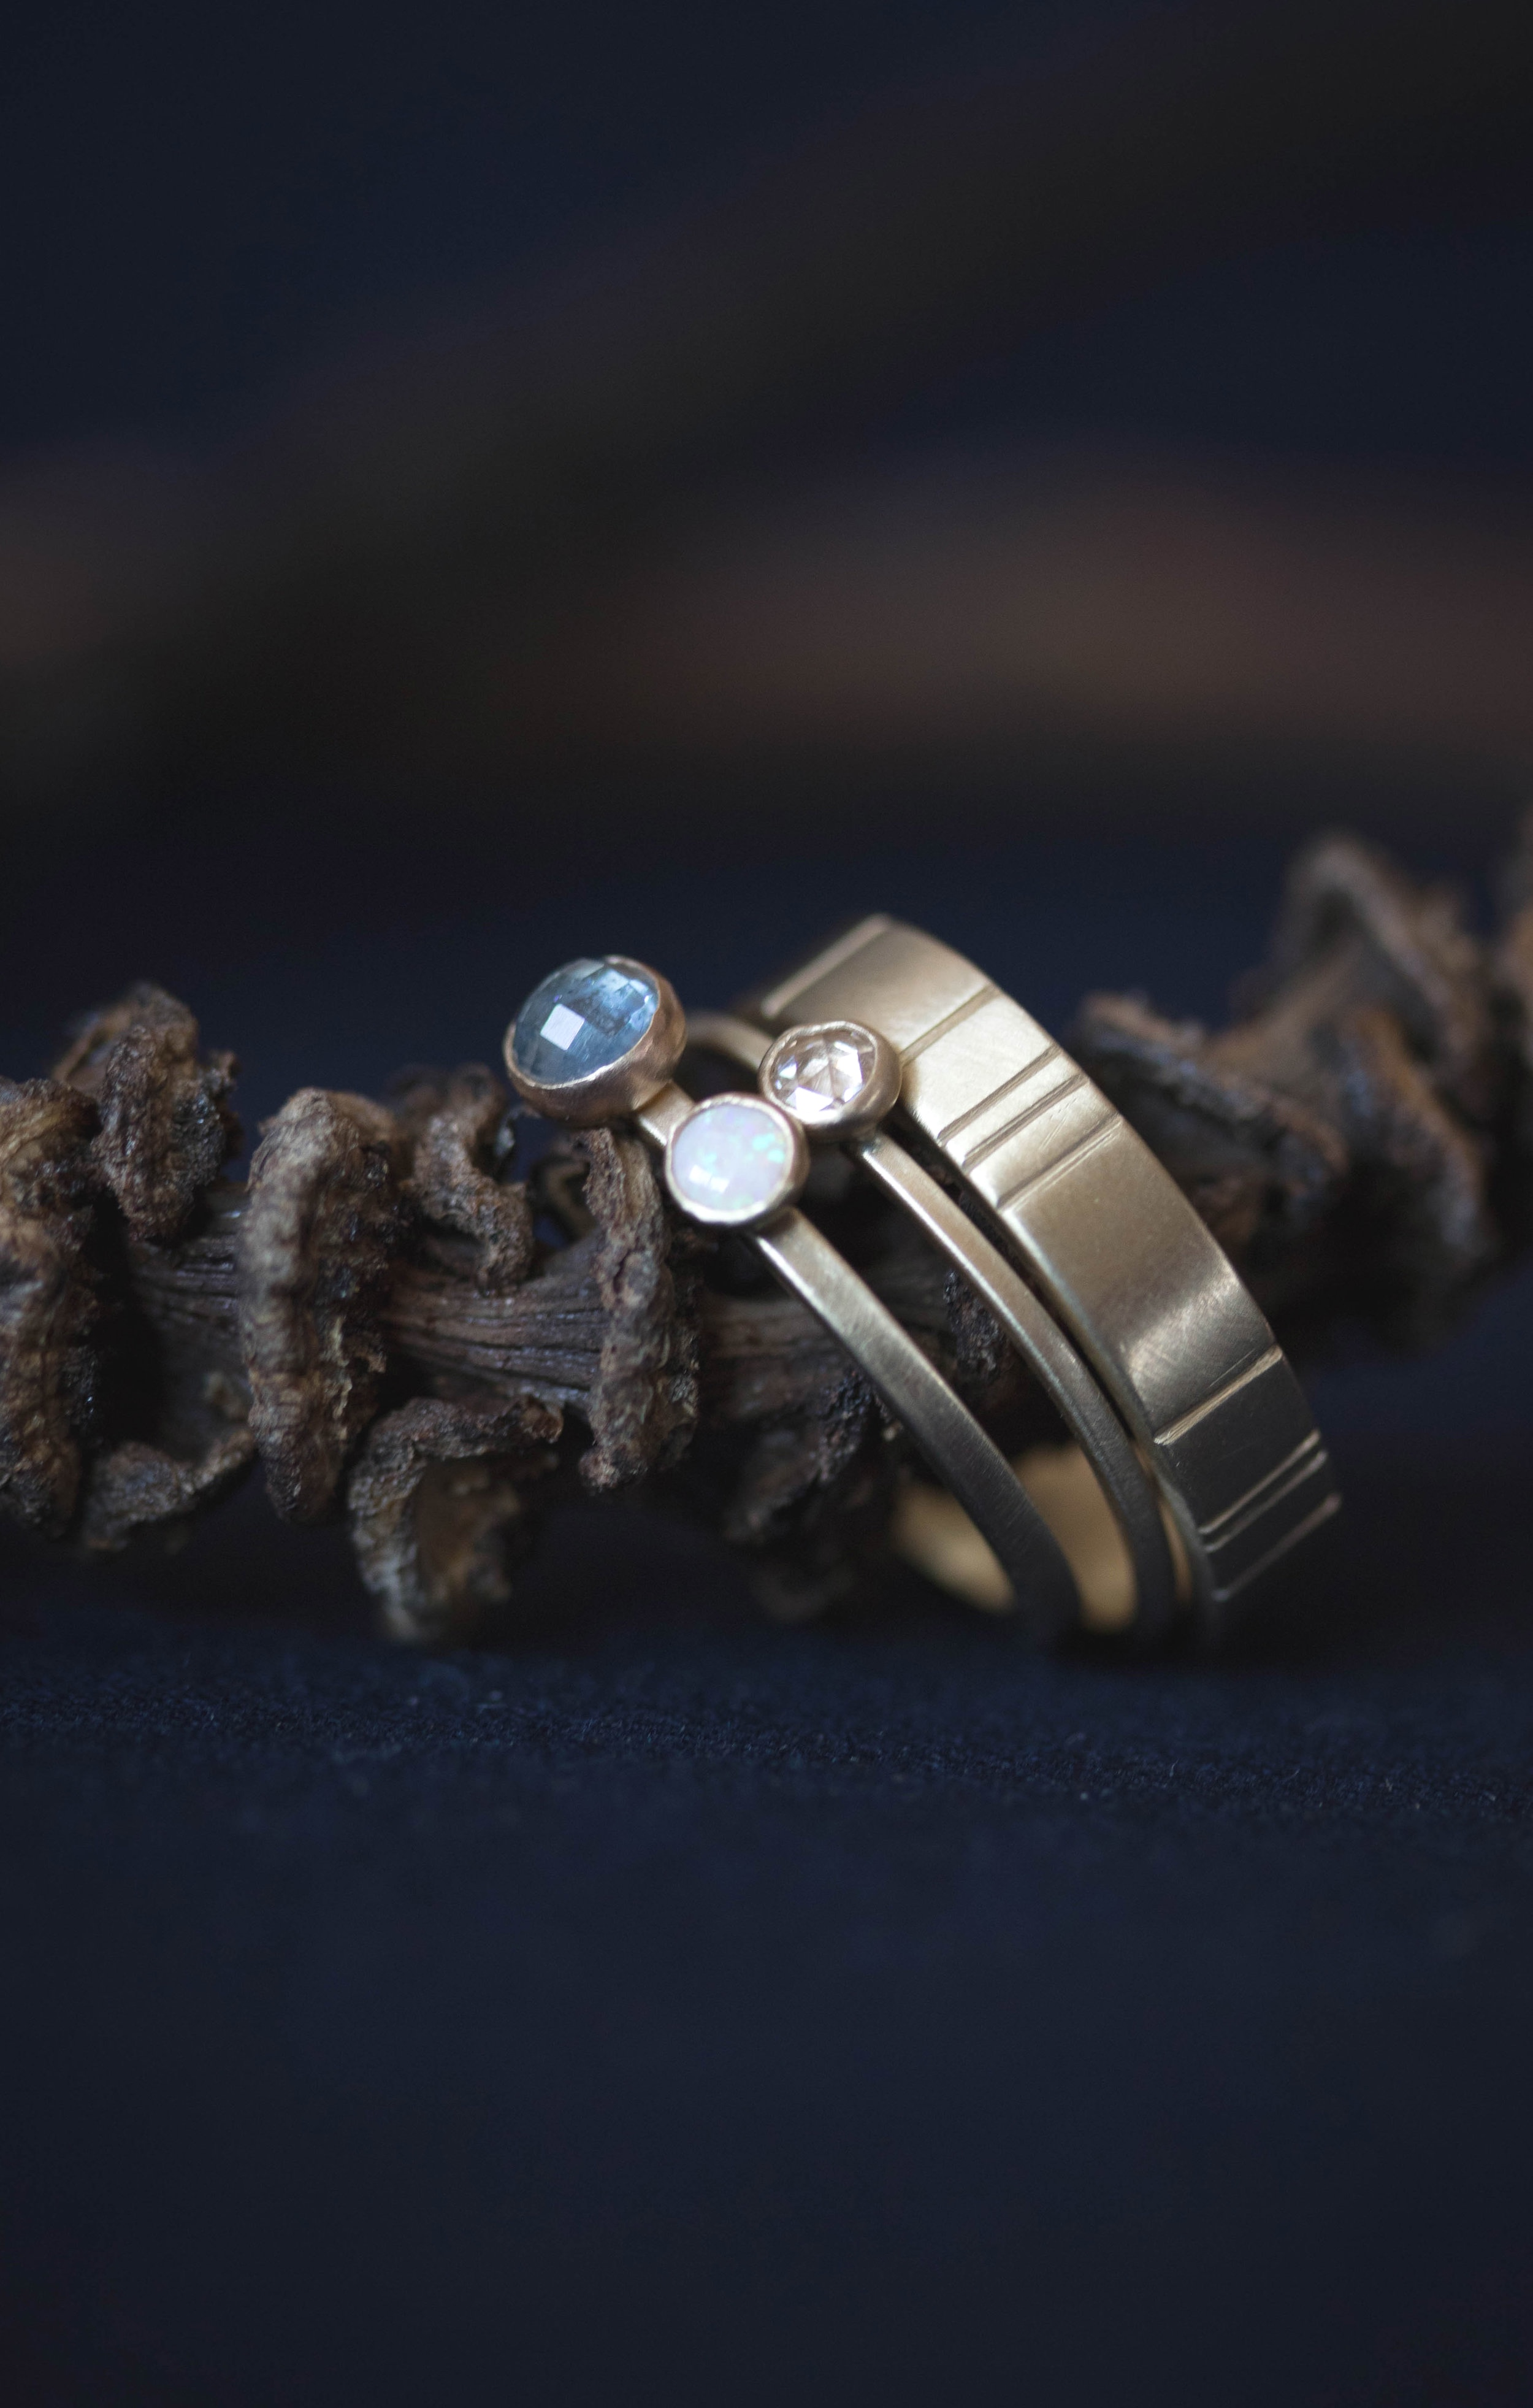 the  Georgia  ring with a rose cut sapphire and opal, along with the  rose cut diamond Terence  and a  4mm Breakwater  band, all in 14k yellow gold